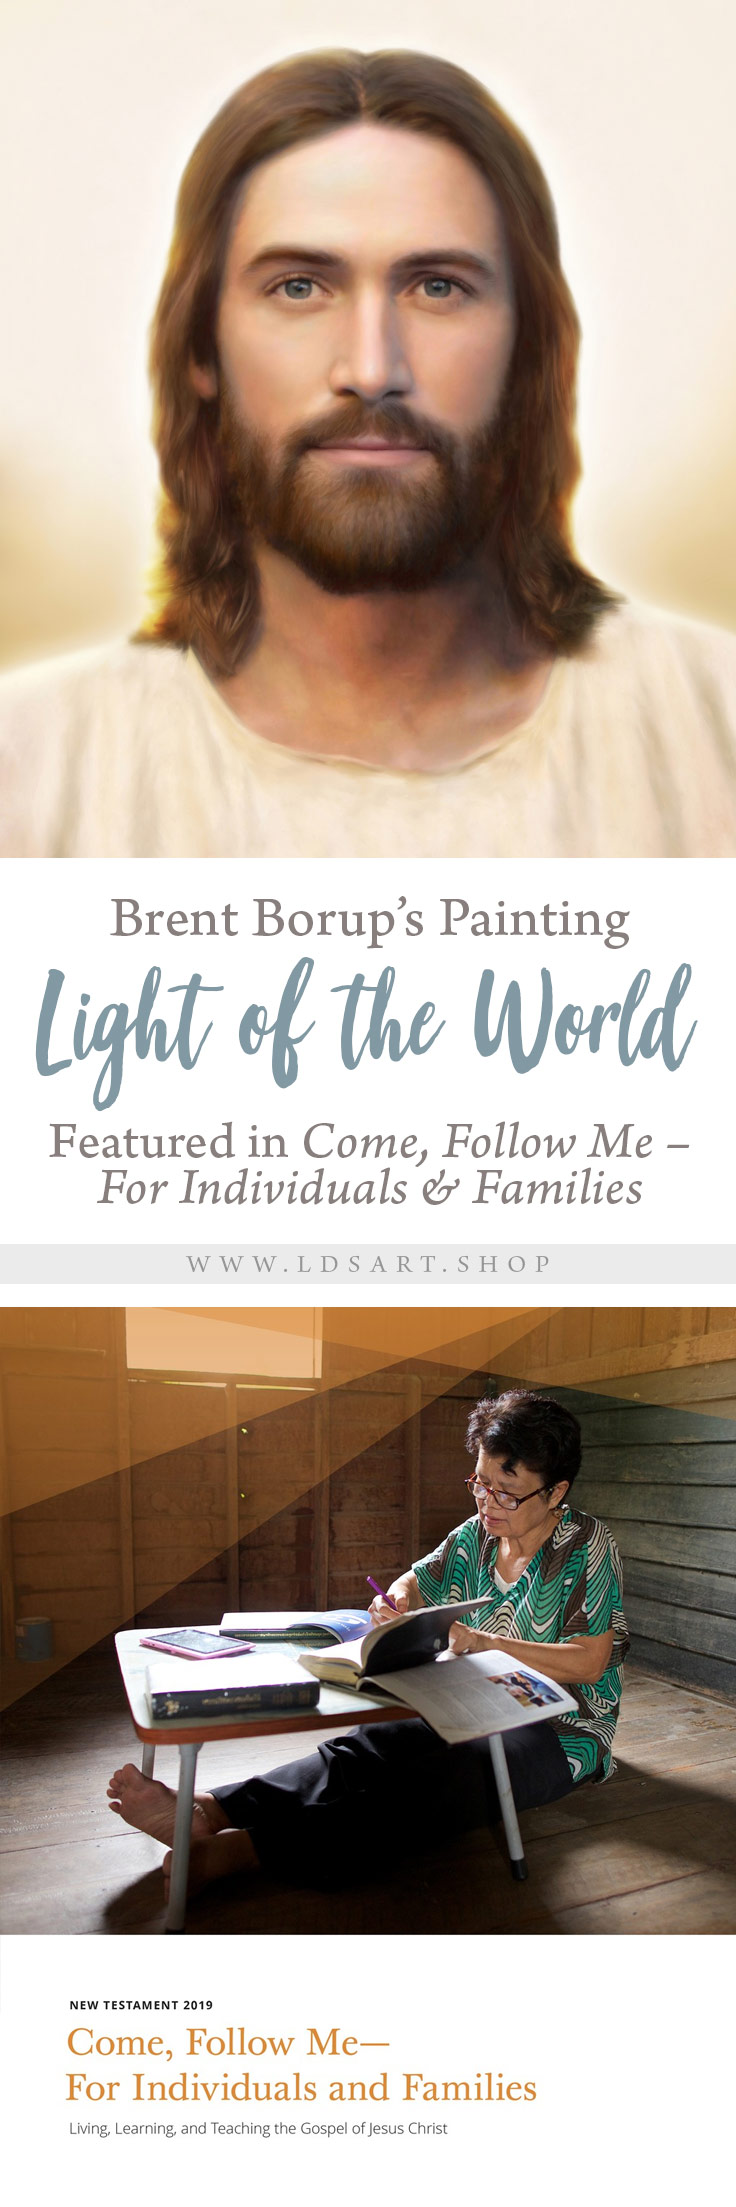 Brent Borup's Christ Painting Featured in